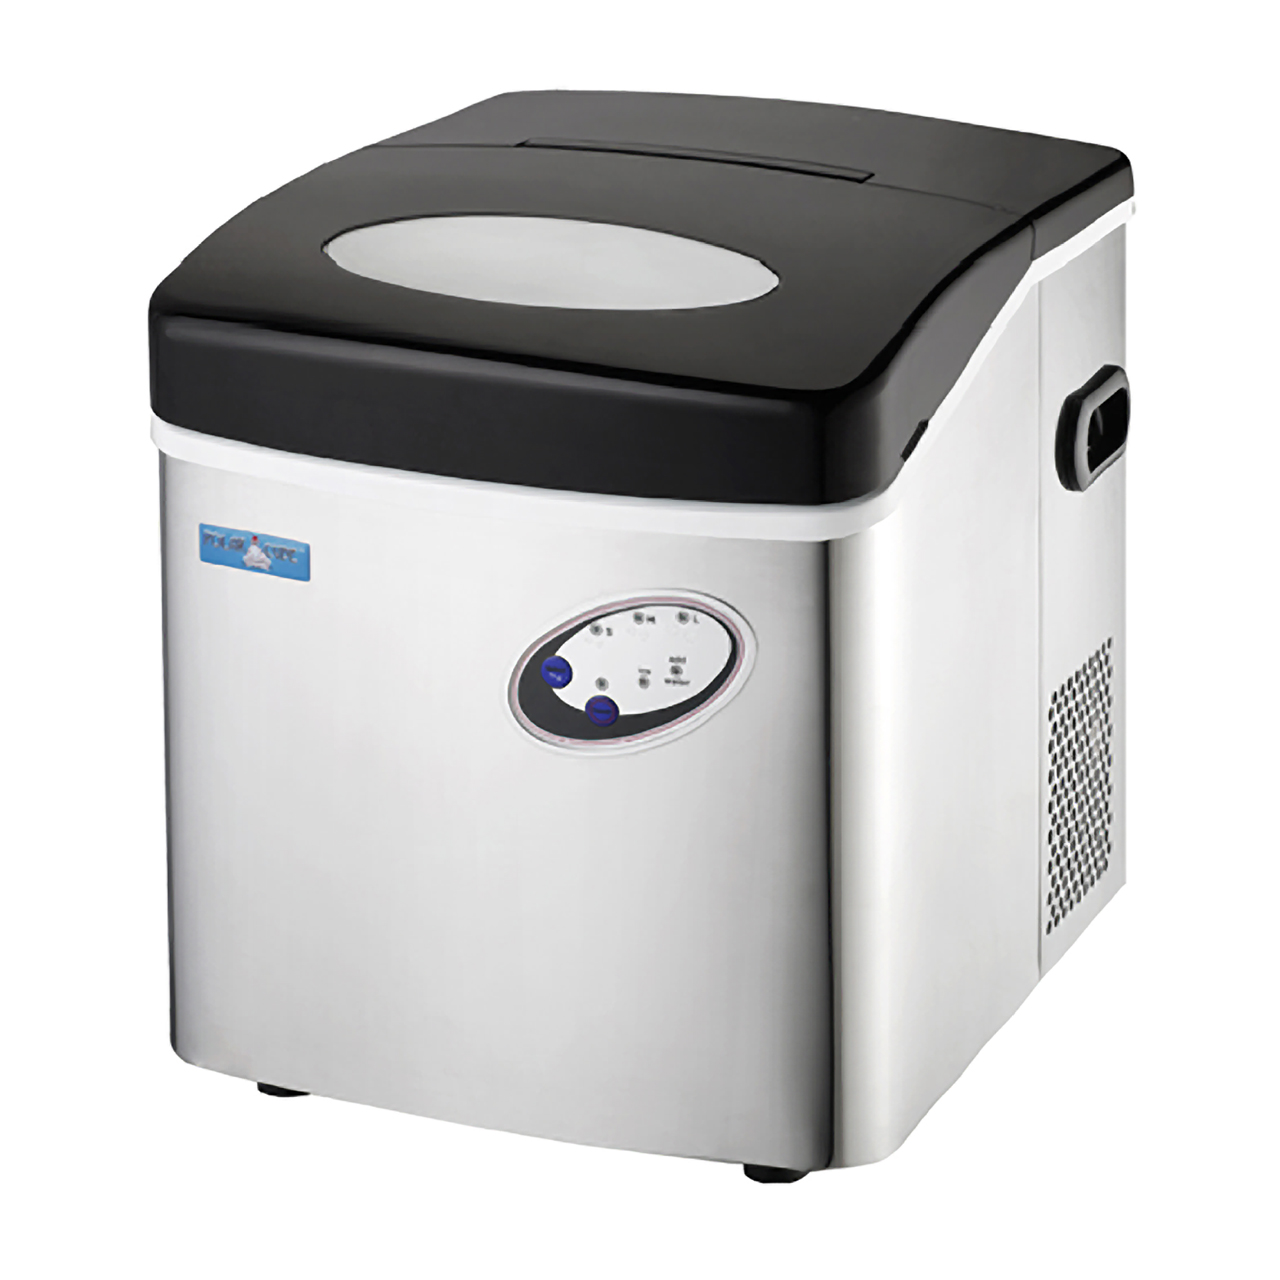 Domestic Countertop Ice Maker : Home Ice Maker Ice Maker Portable Ice Machine Pictures to pin on ...